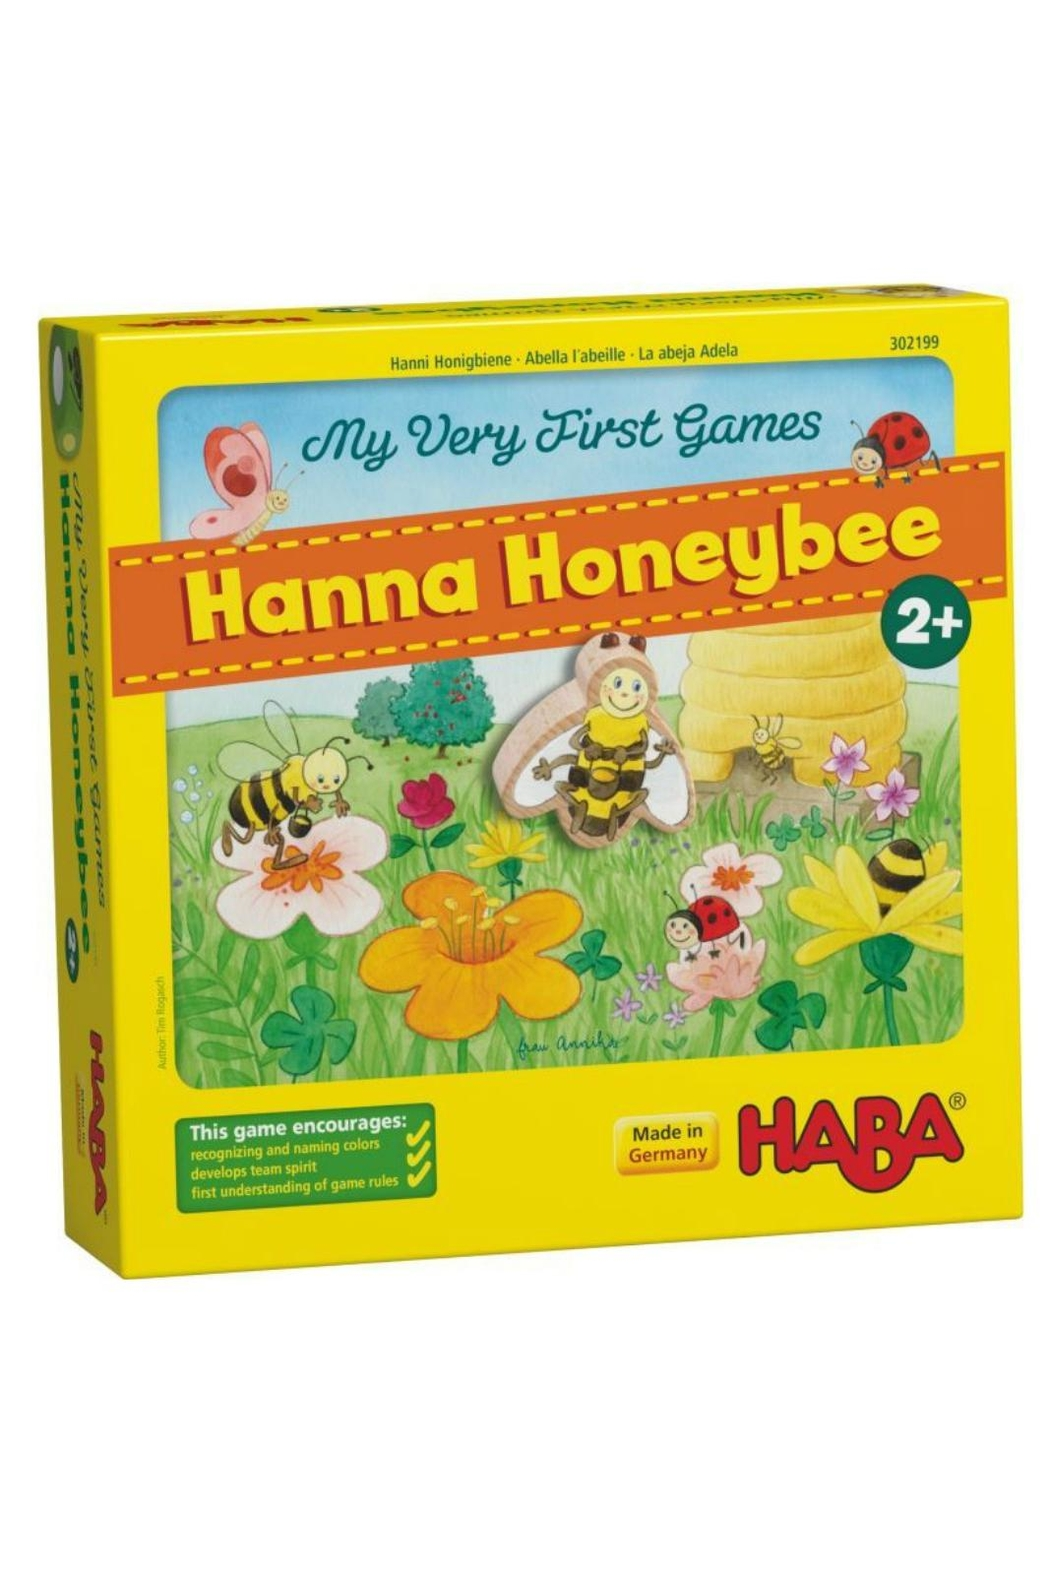 HABA USA Hanna Honeybee - Main Image